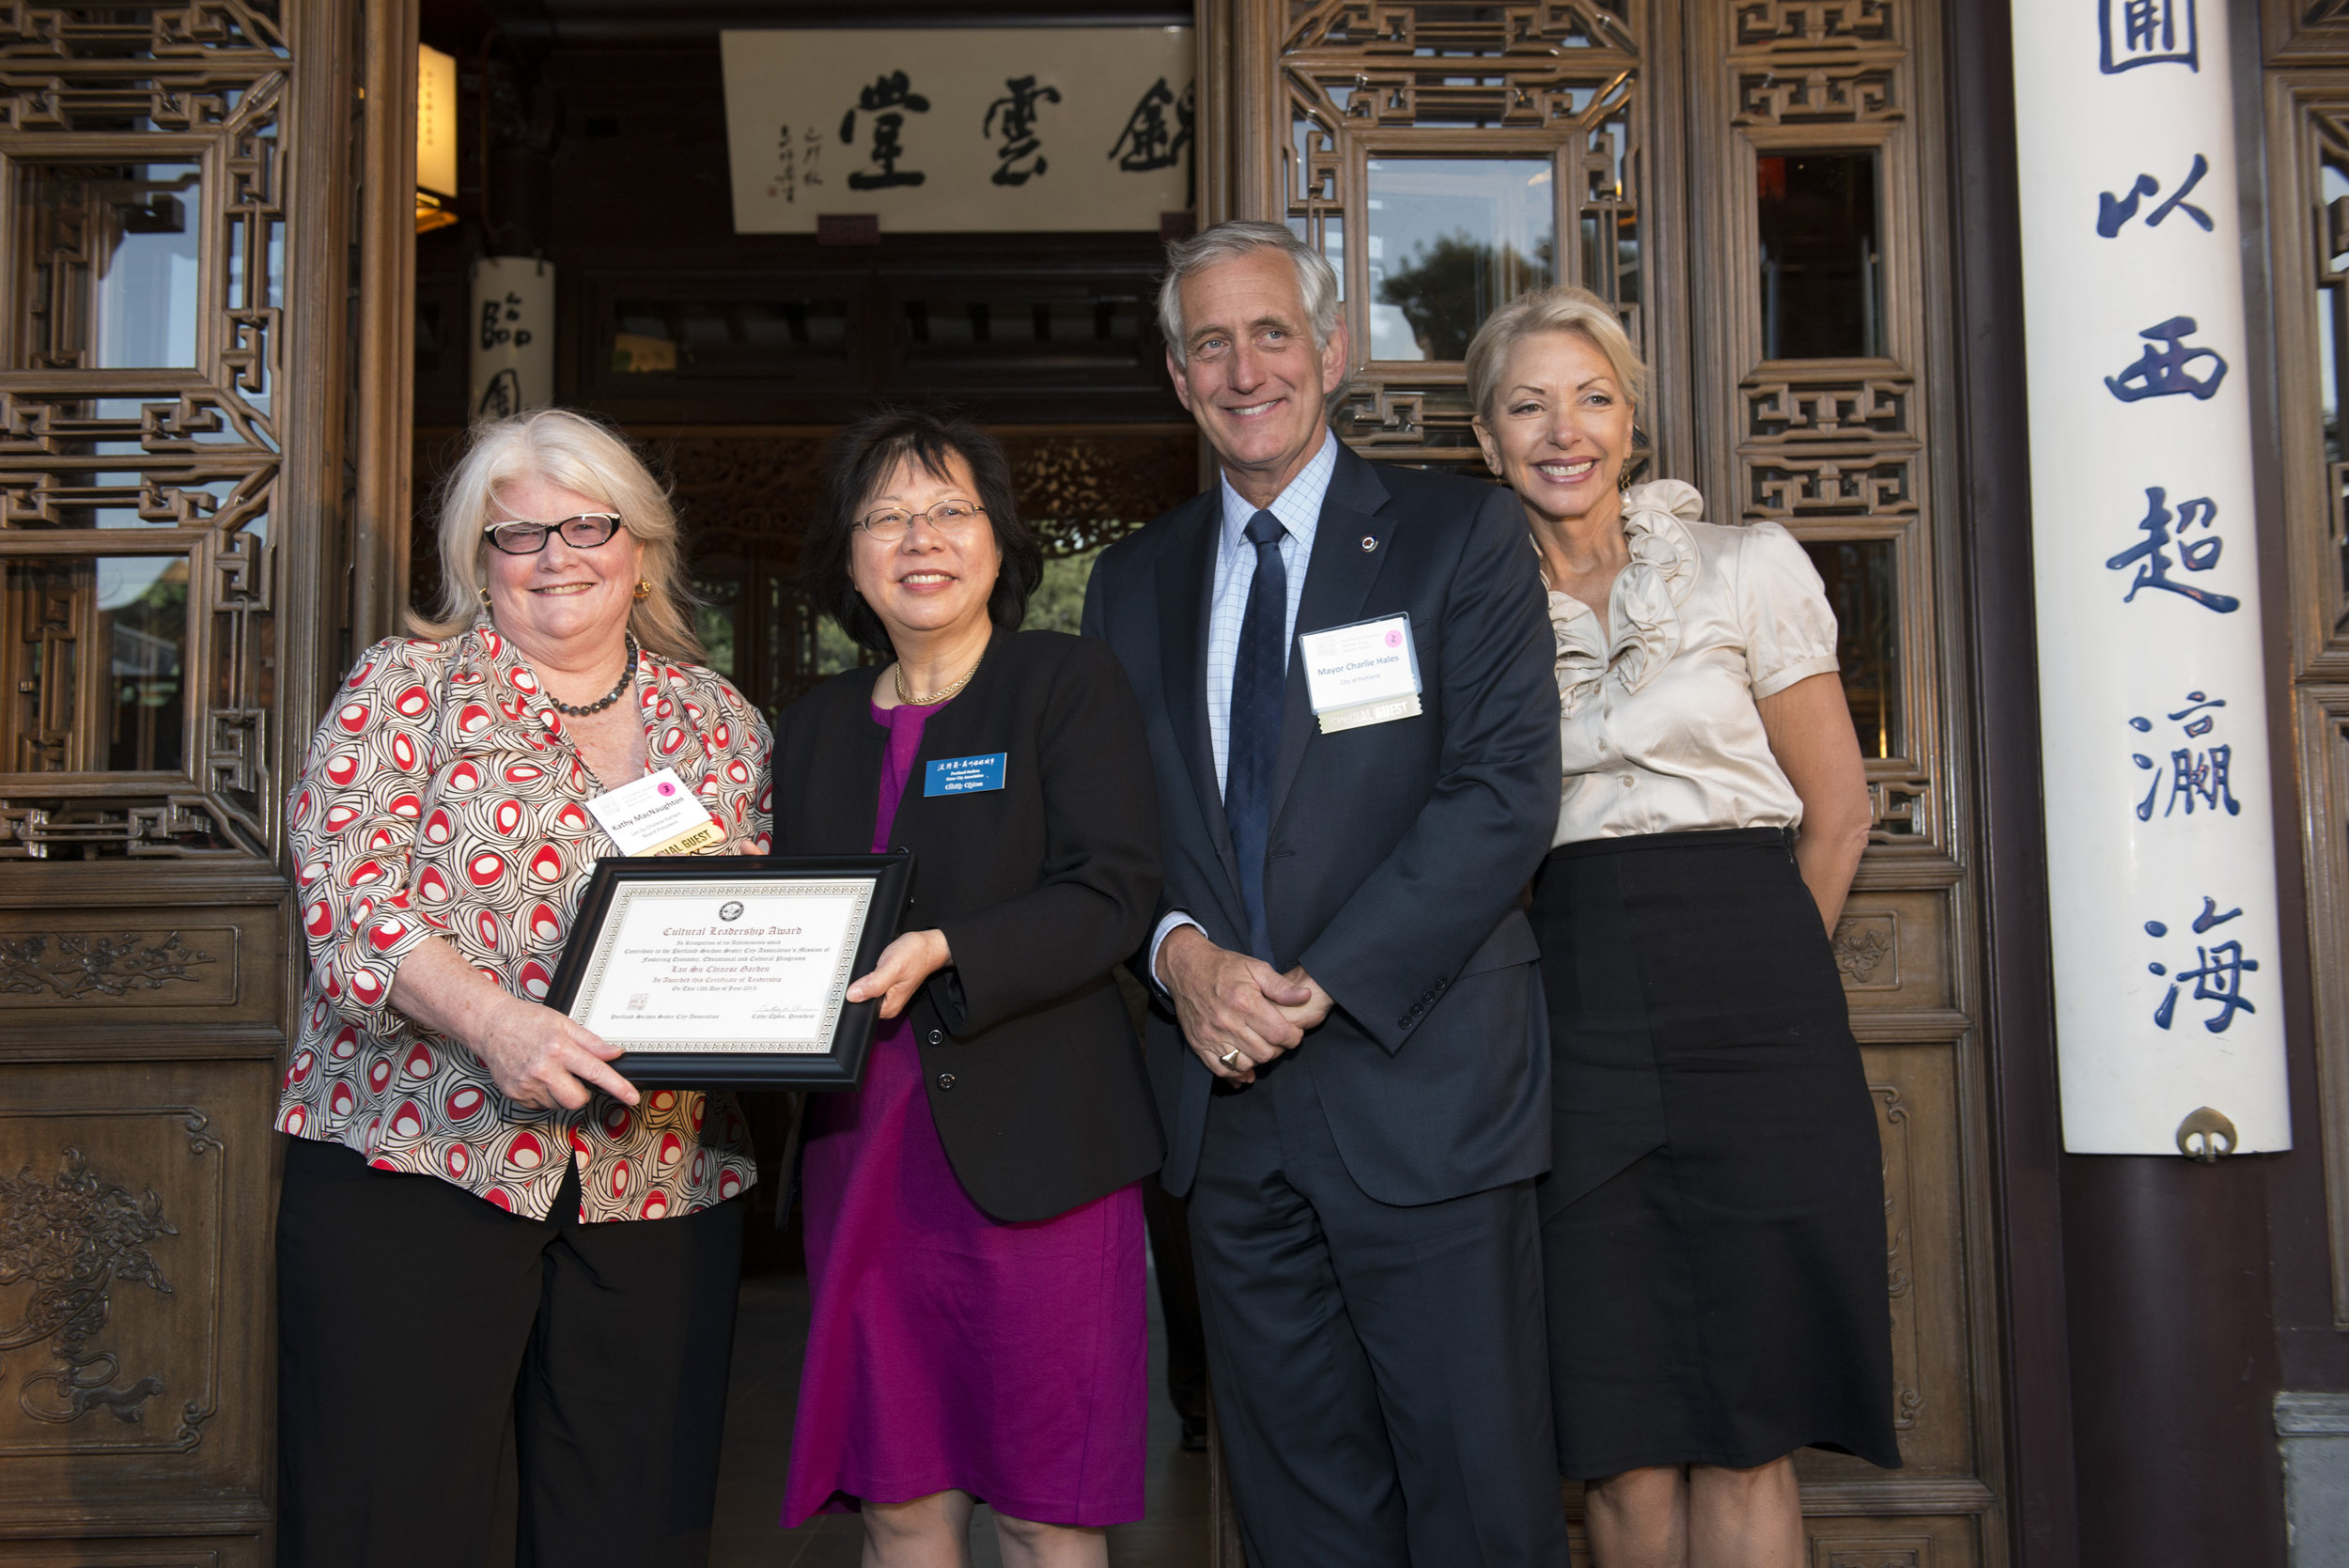 6-12-15 PSSCA Gala - Award Cultural Leadership to Lan Su Chinese Garden